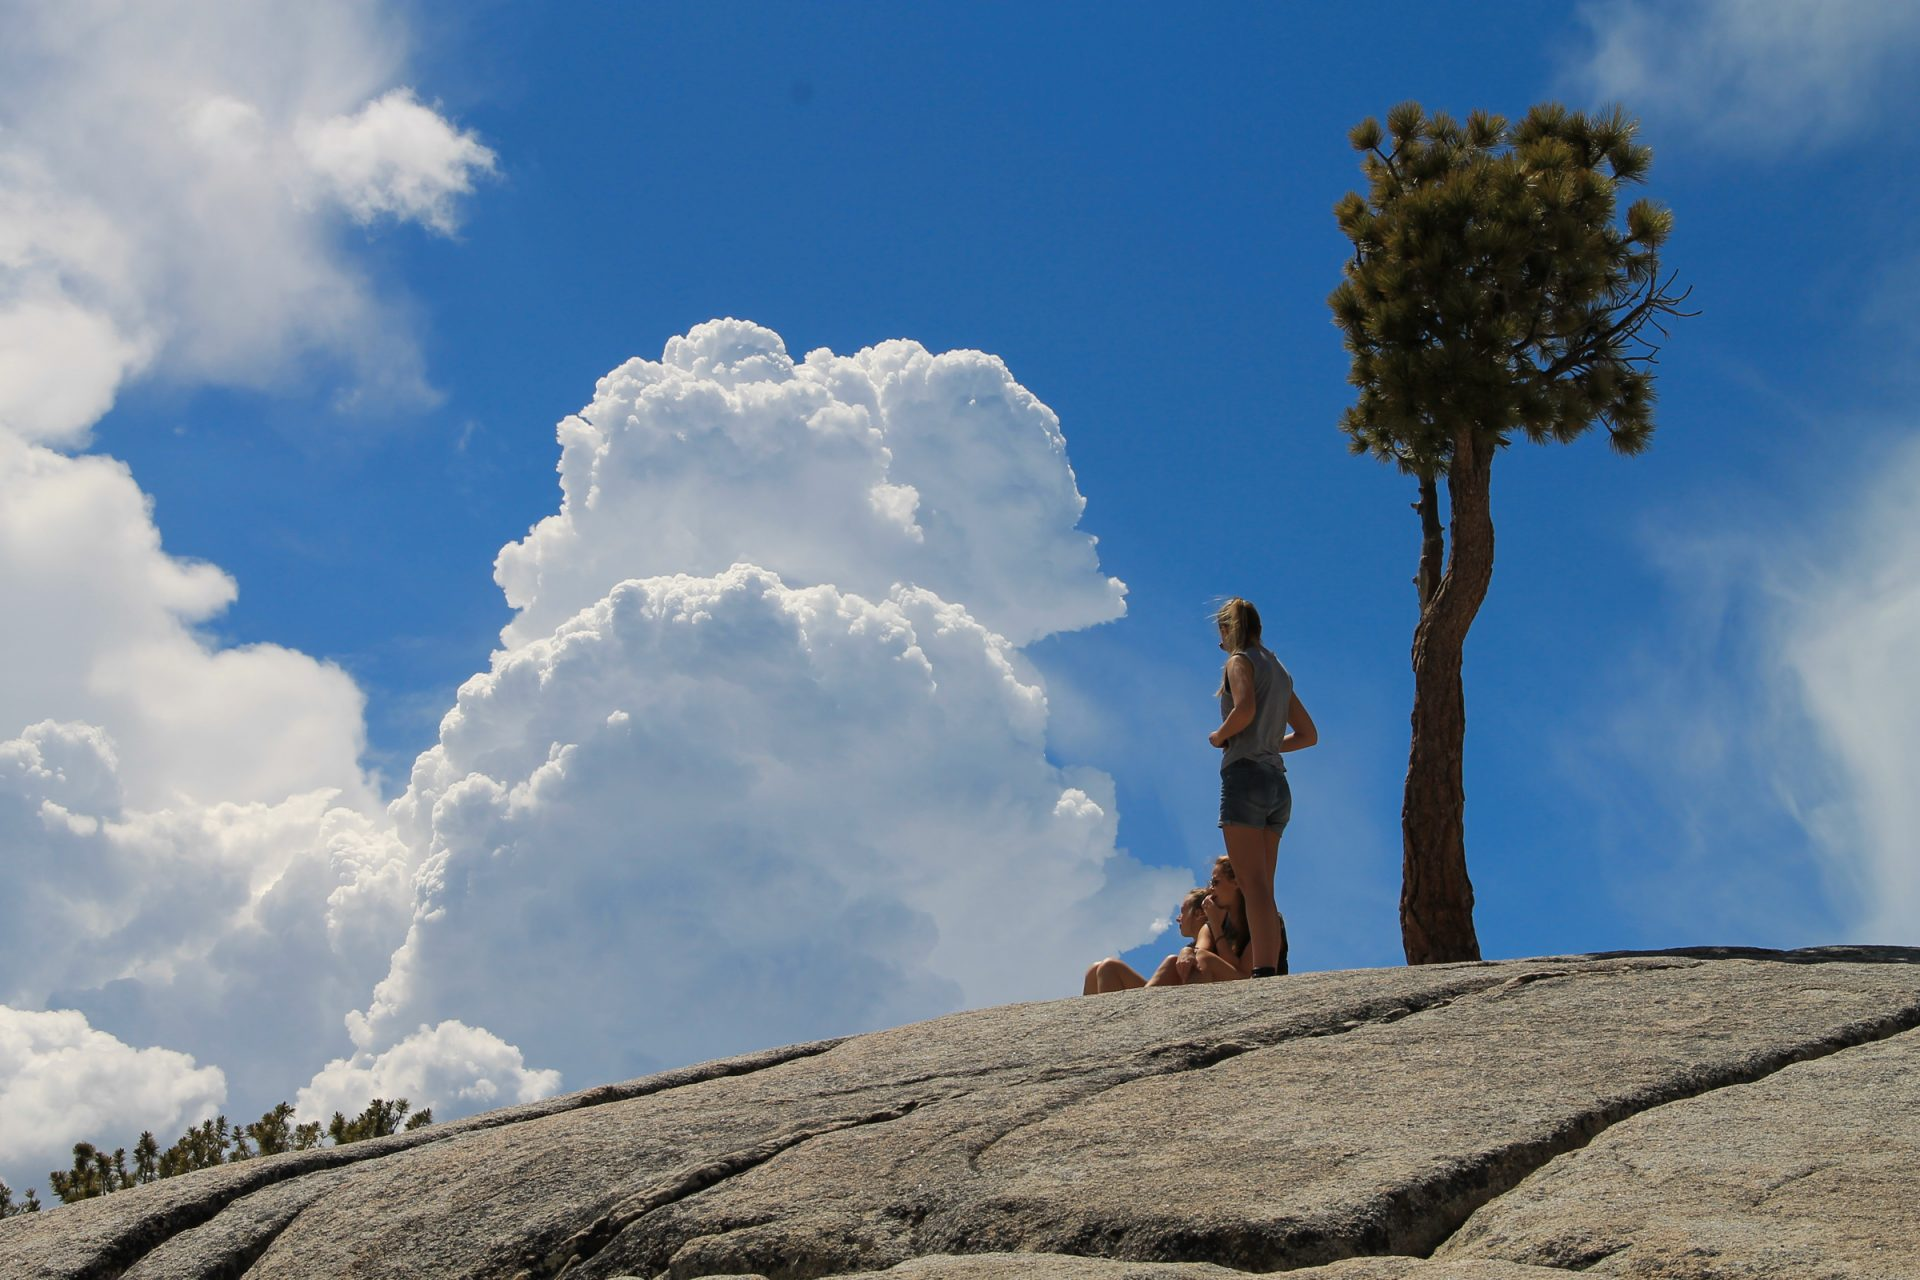 Girls on Rock with Clouds